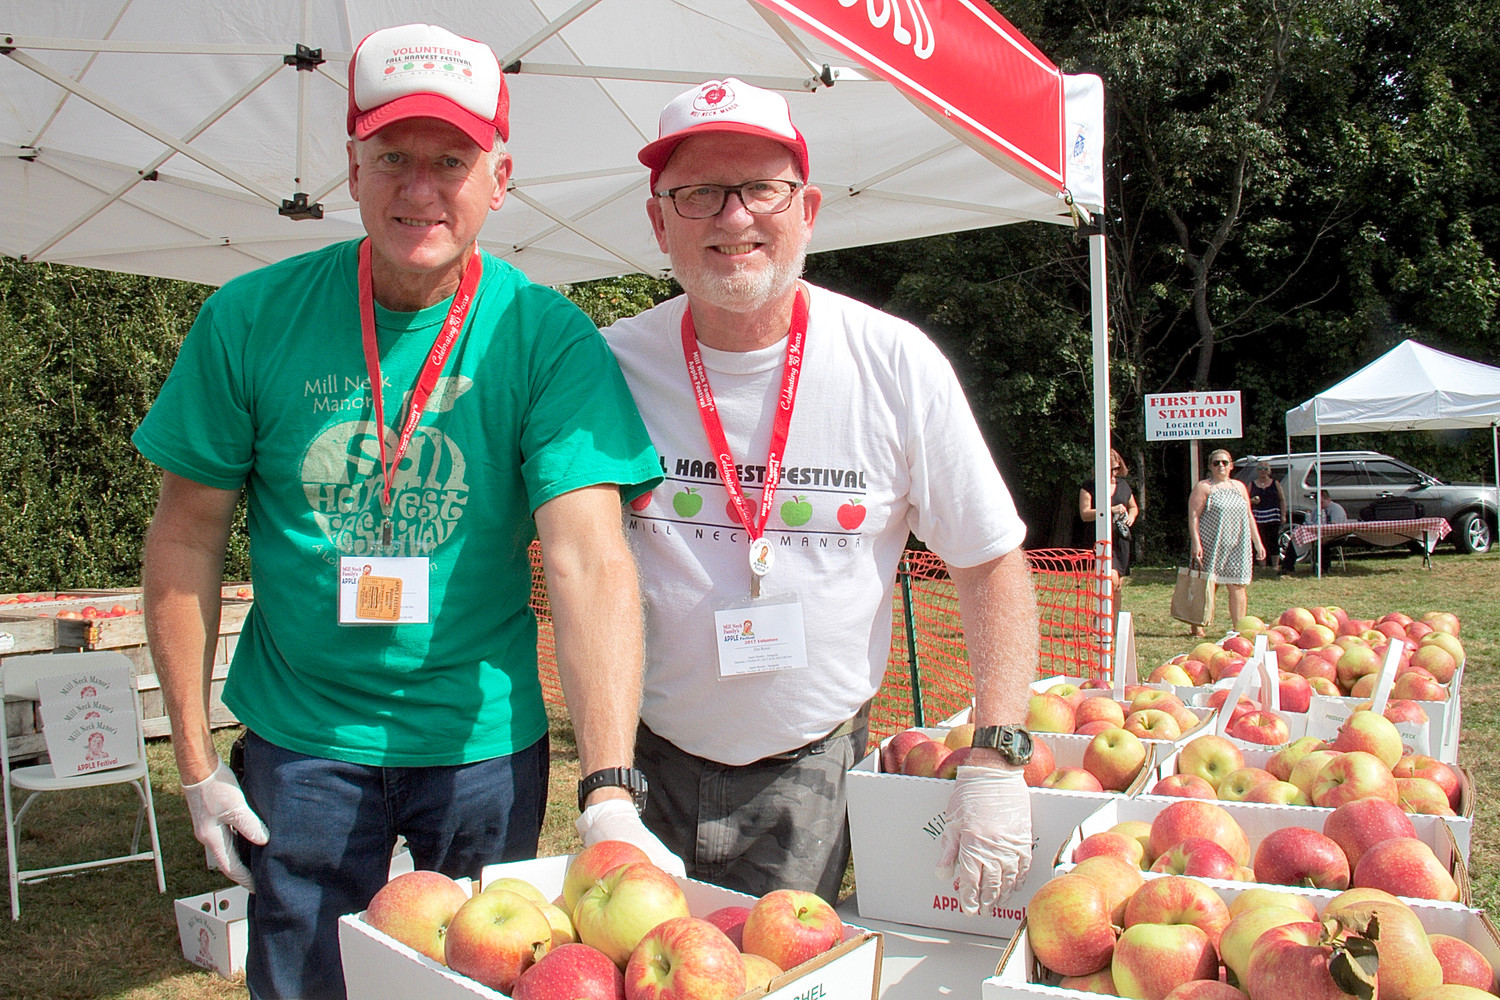 The Rossi brothers helped guests  choose Jonagold apples at the festival.